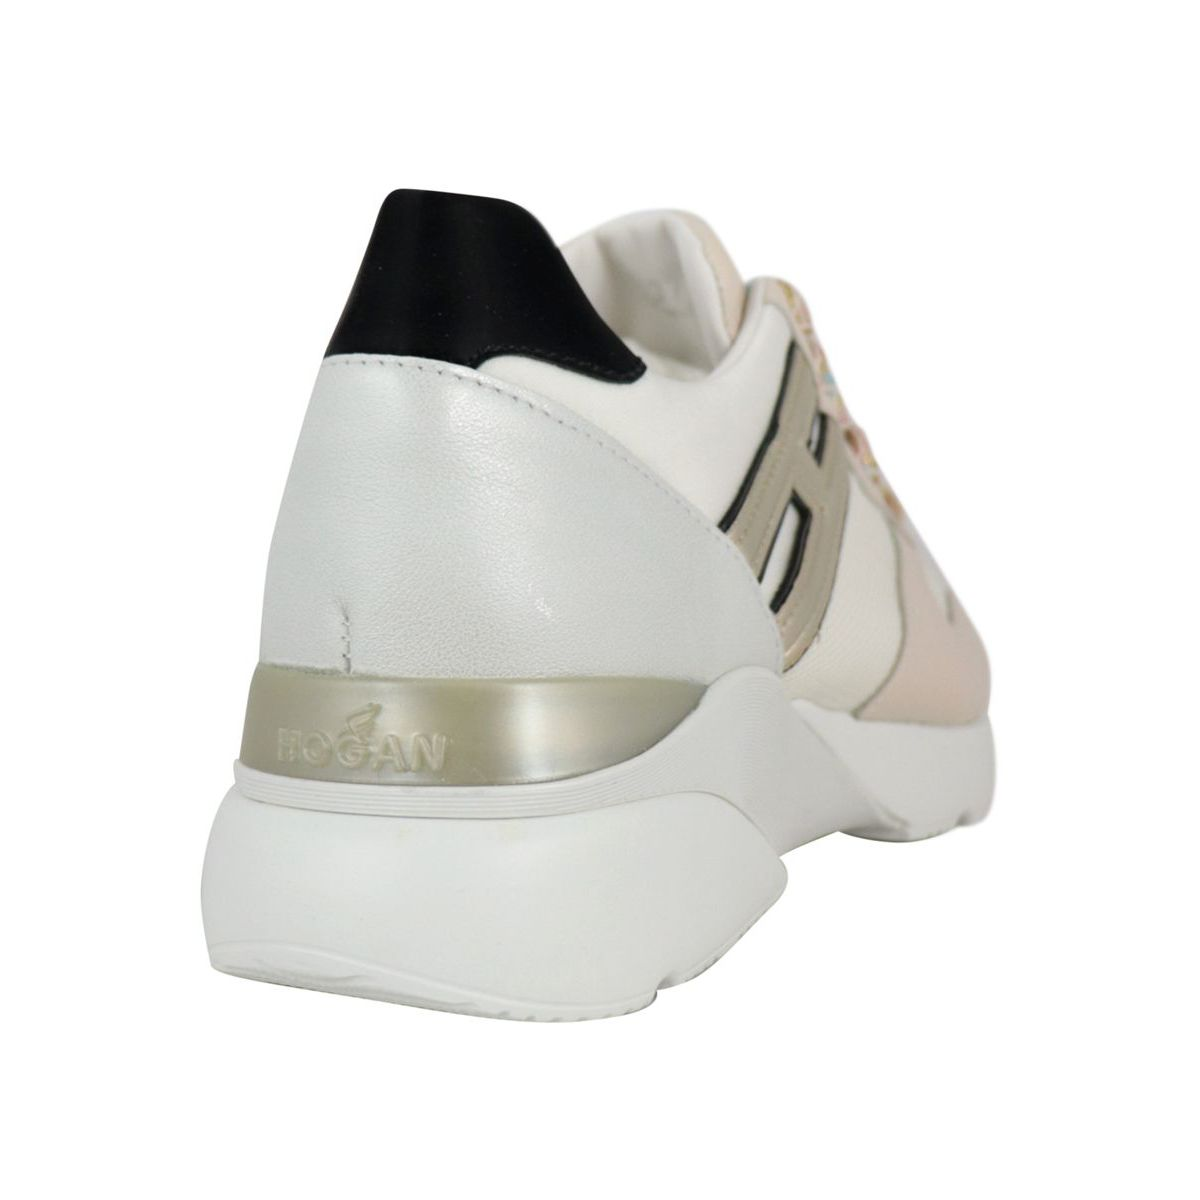 Active One sneakers in leather and micro mesh White / beige Hogan